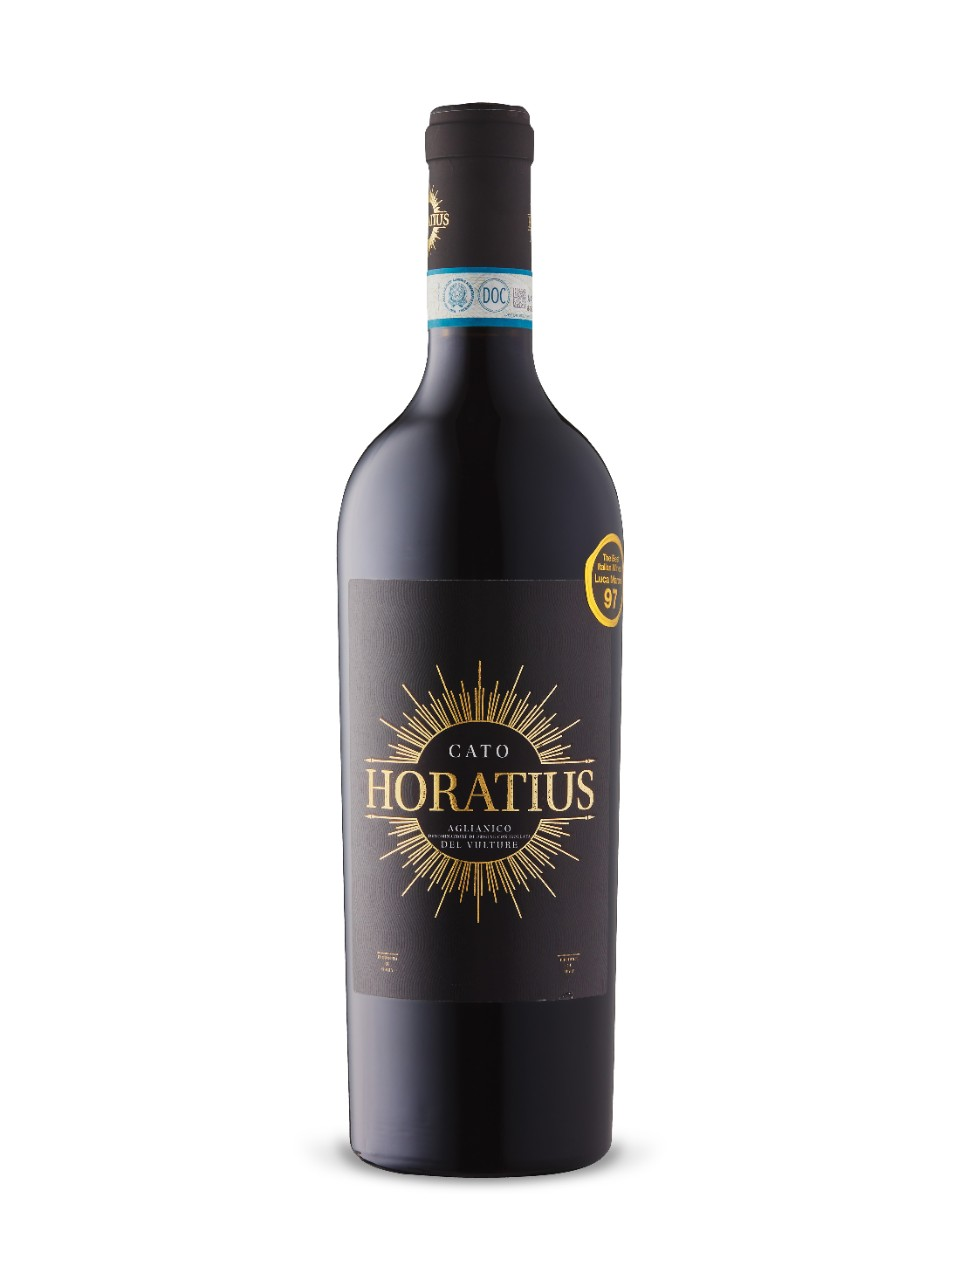 Cato Horatius Aglianico del Vulture 2014 from LCBO